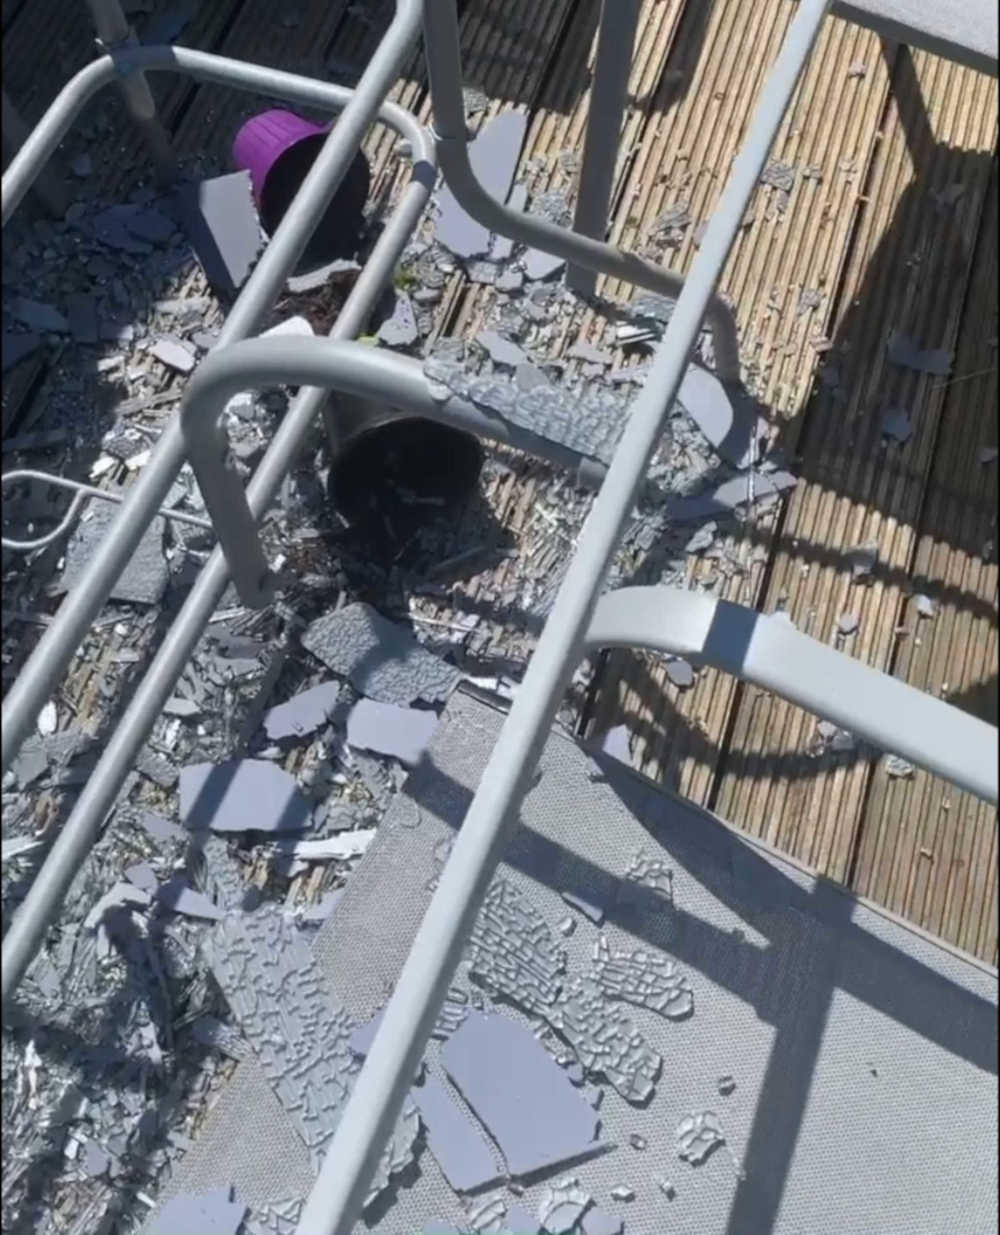 Shattered Argos table